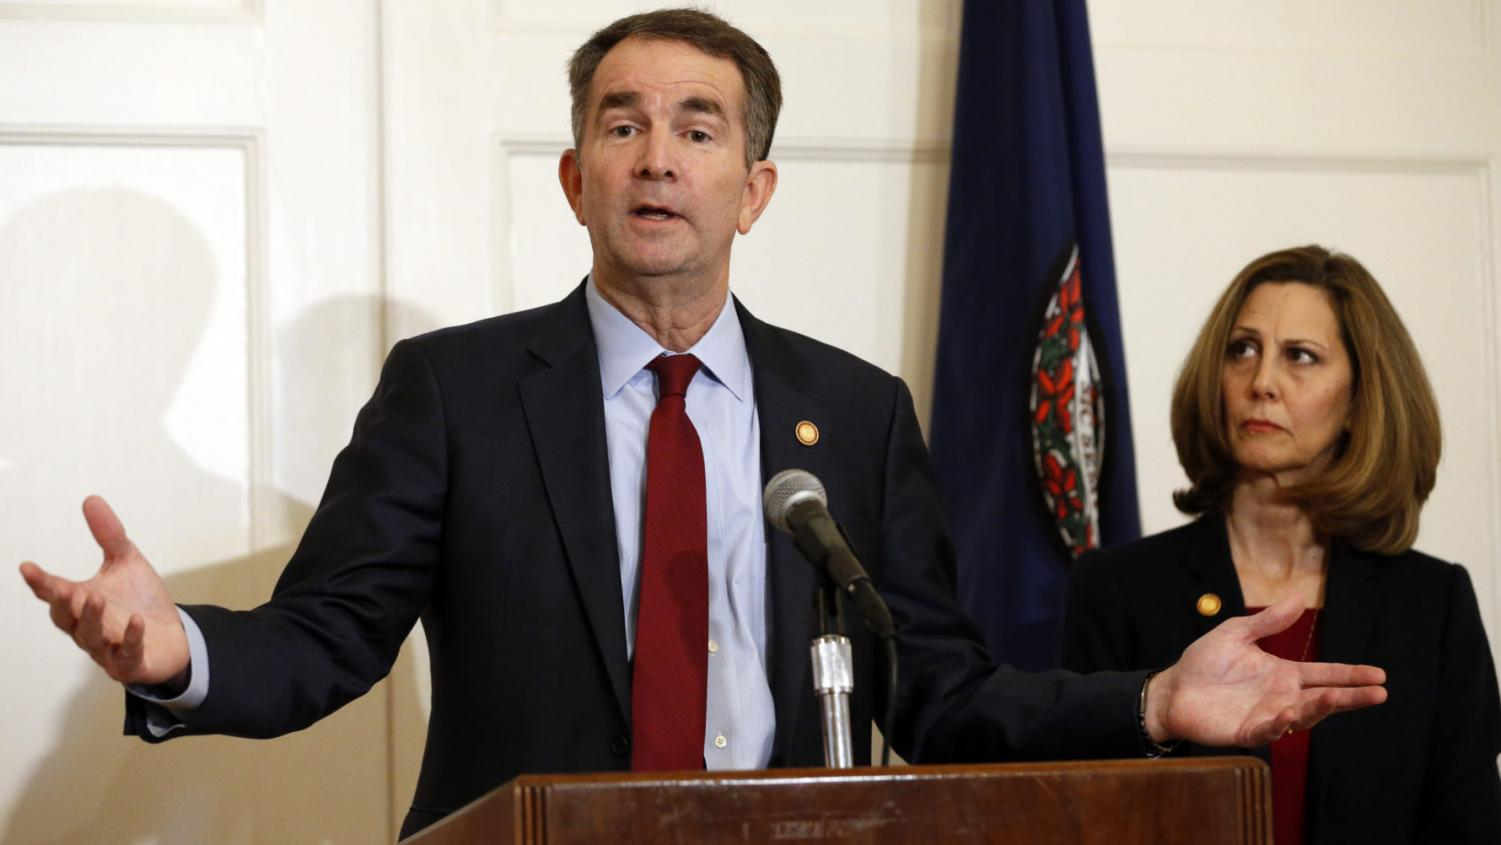 Calls for Northam to resign have increased amid the release of a yearbook photo.